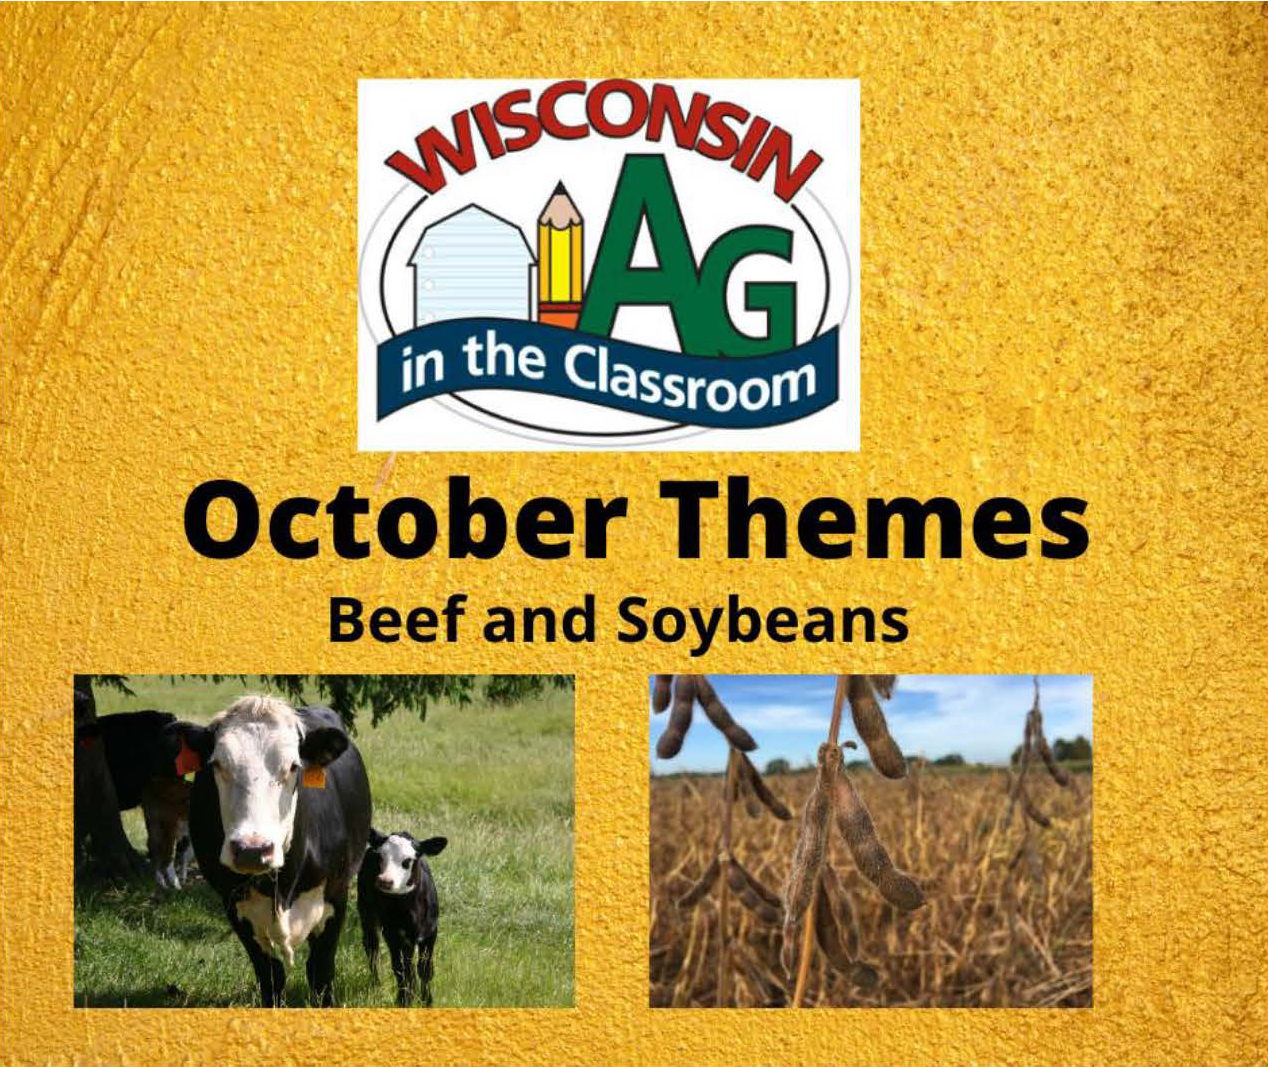 October 2020 theme - beef and soybeans